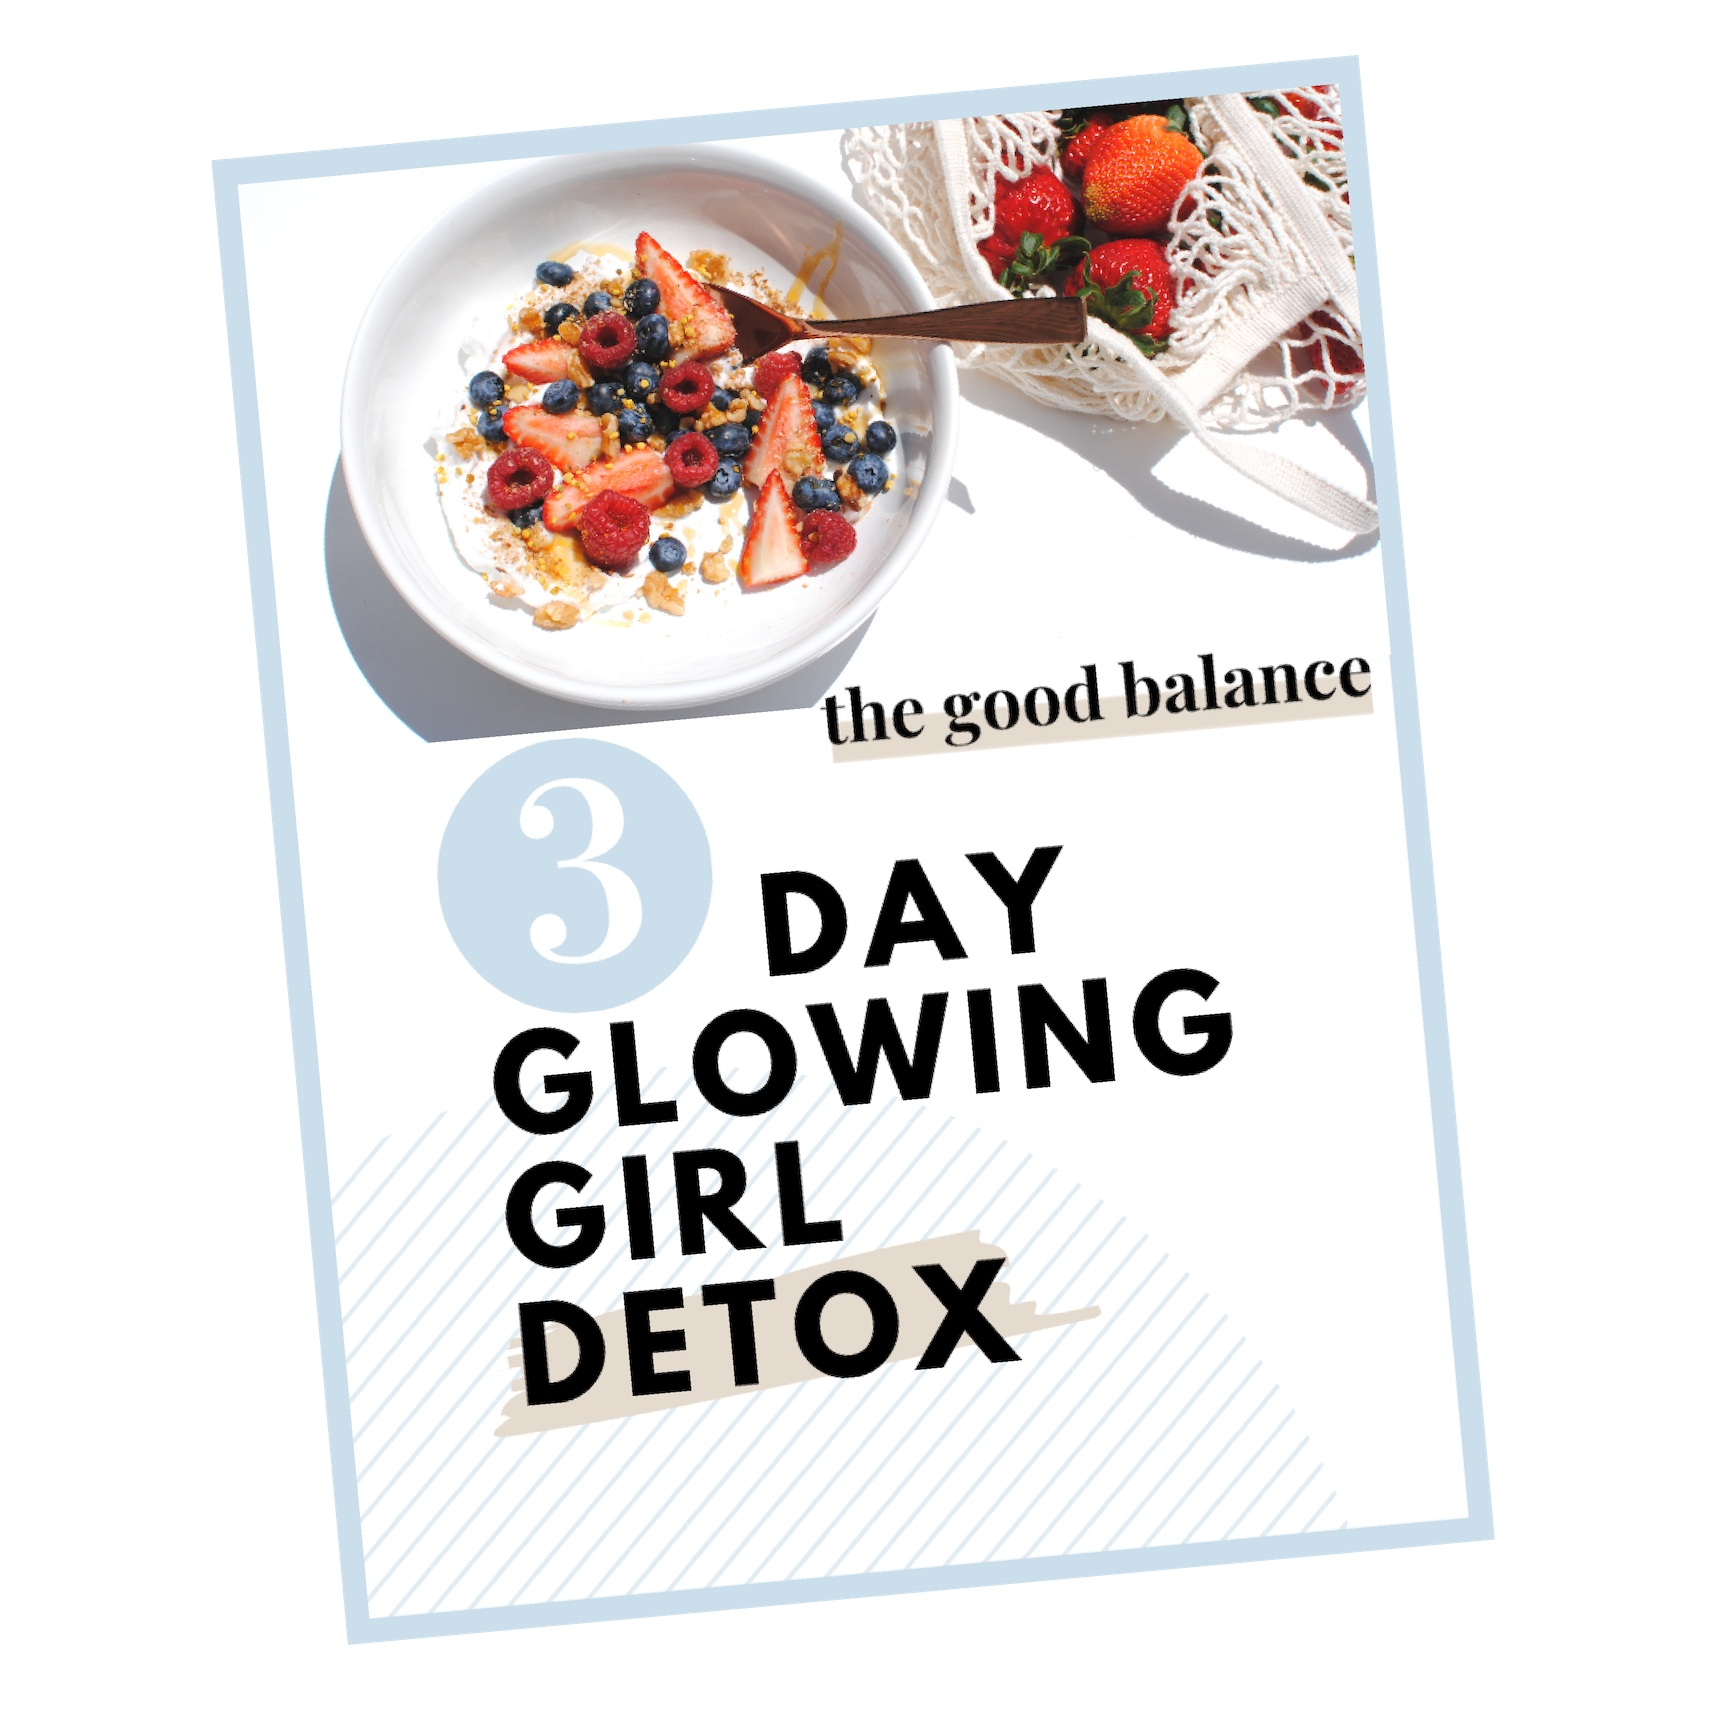 The 3 Day Glowing Girl Detox - A 3 day introduction to living The Good Balance way. This 3 day plan is based on batch prepping for quick and easy meal building. Here you'll get a jump start on reseting your tastebuds and de-puffing with light flavorful dishes. You'll boost up on beauty foods and support your digestion, you'll be glowing in no time with this guide even if you're